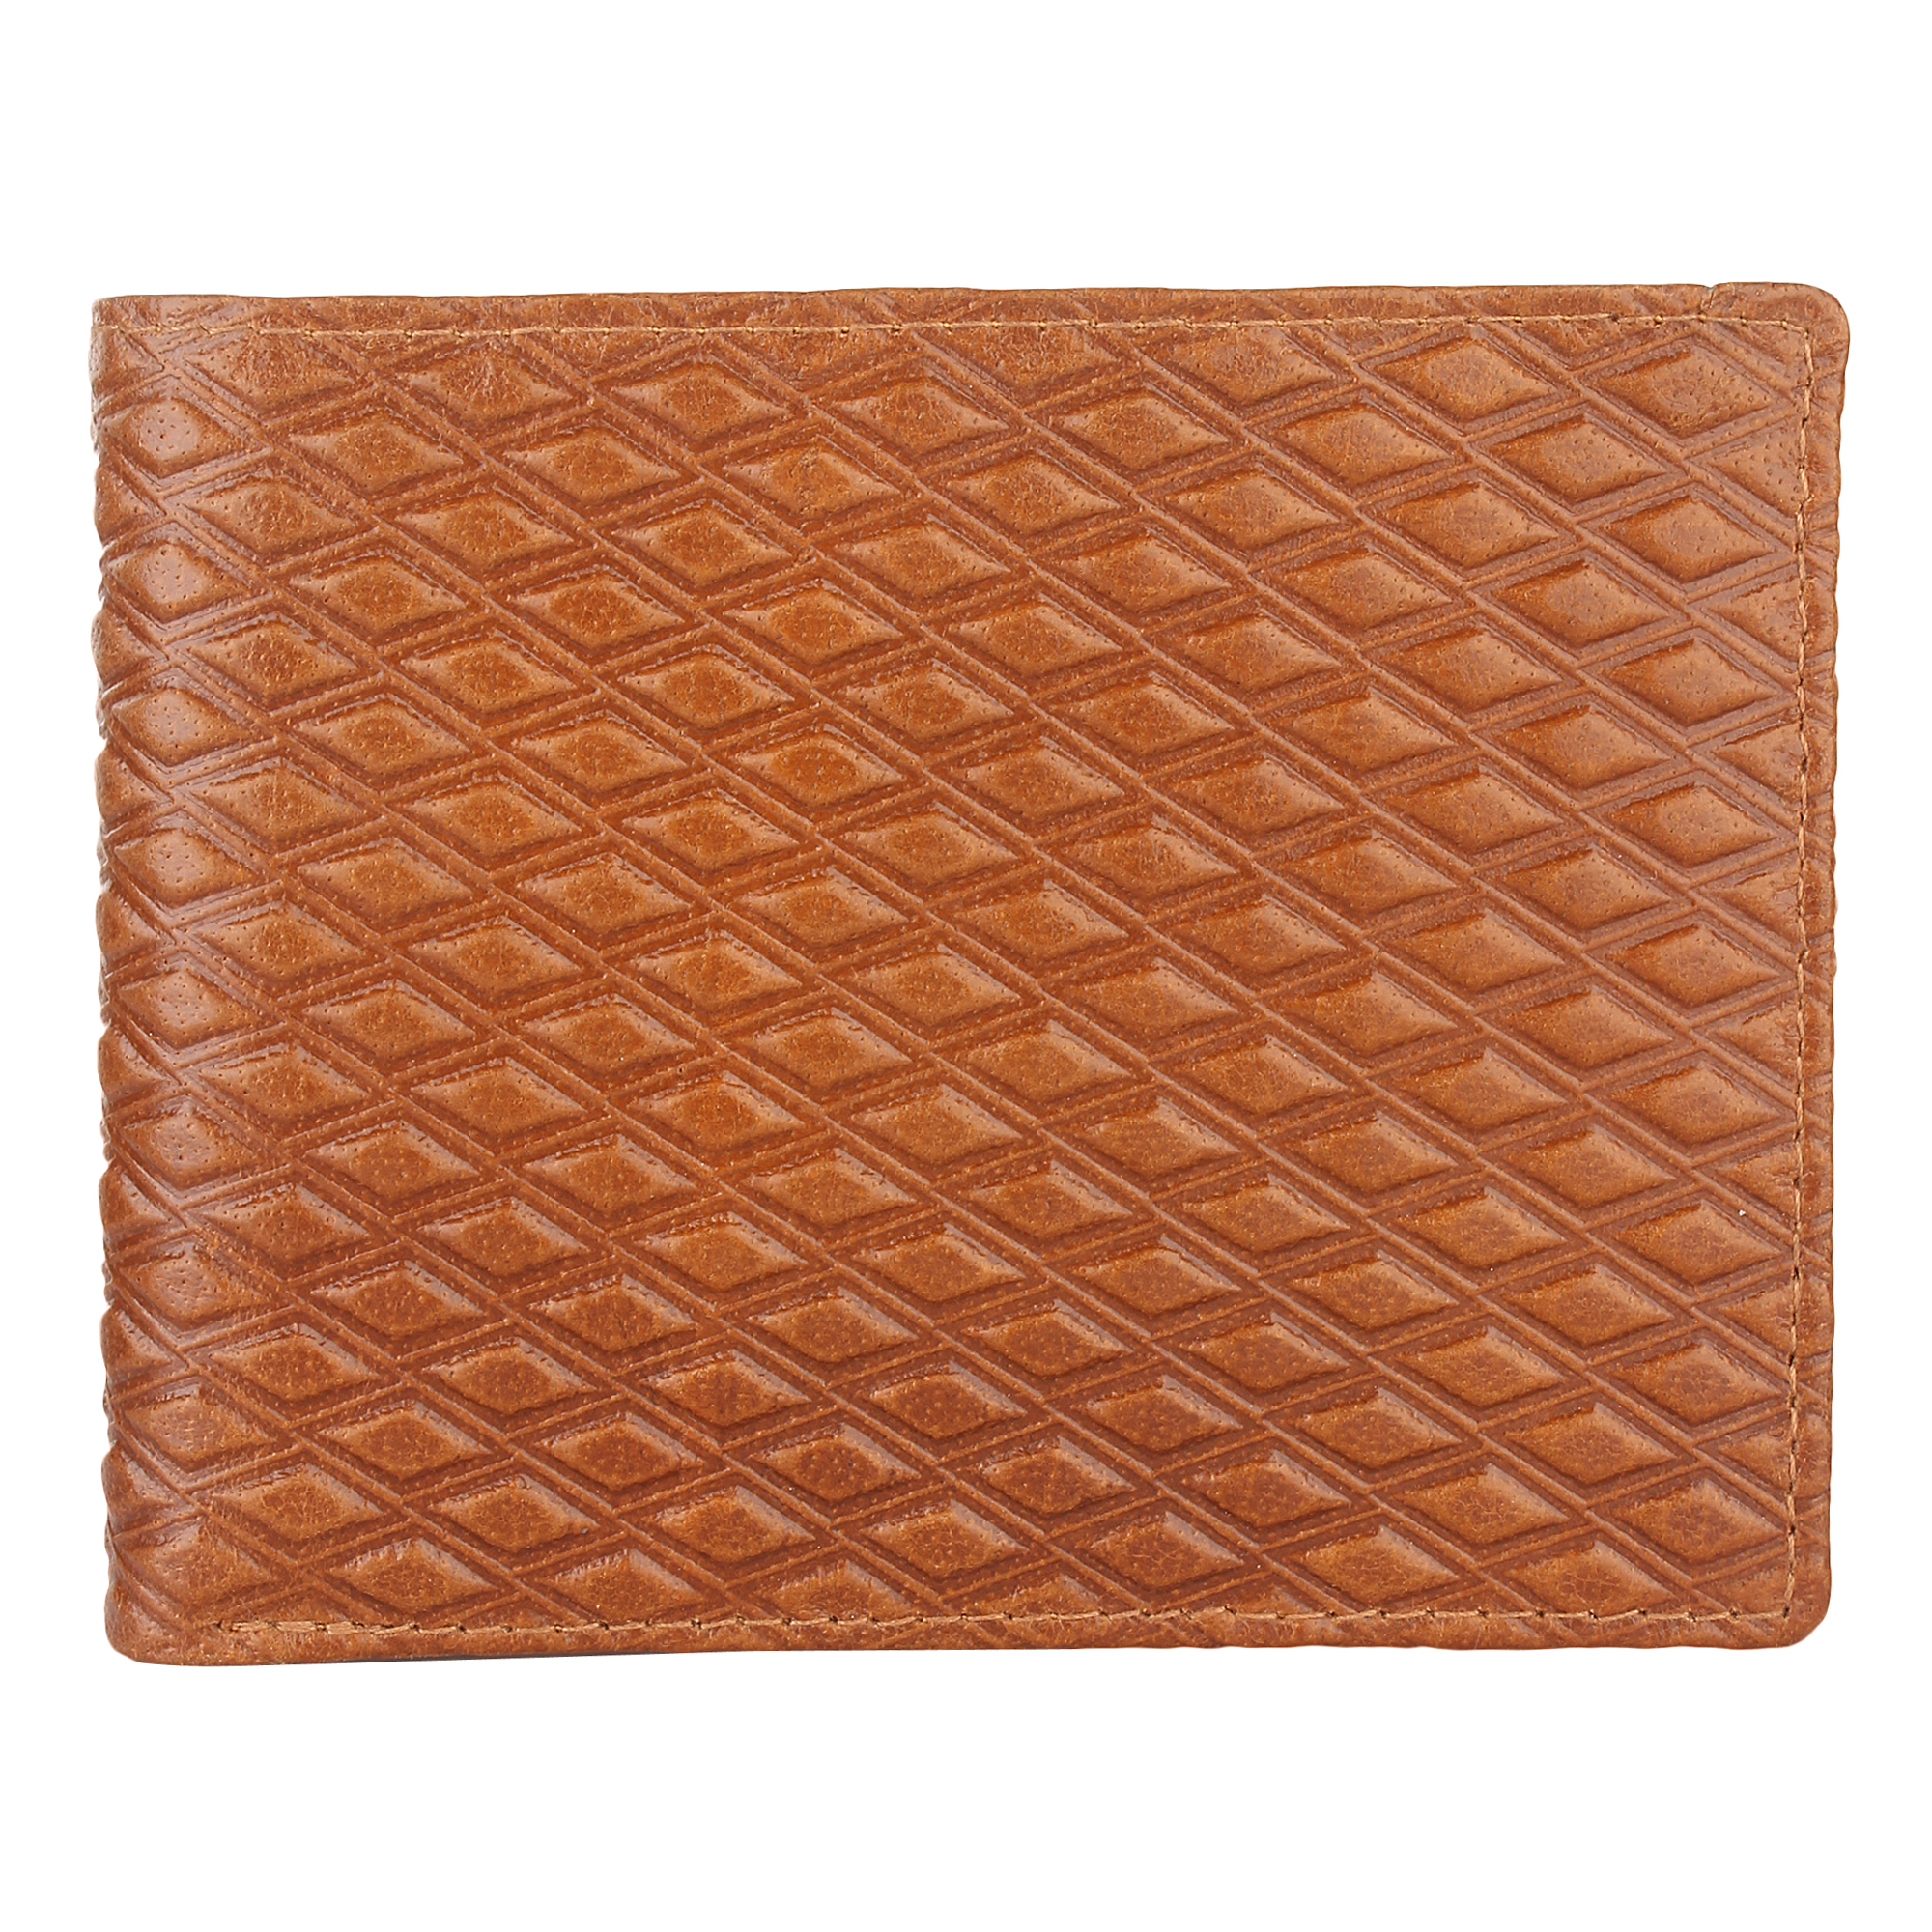 Leather Wallets Manufacturers in Iraq, Leather Wallets Suppliers in Iraq, Leather Wallets Wholesalers in Iraq, Leather Wallets Traders in Iraq, custom leather wallet manufacturers in Iraq, Leathe